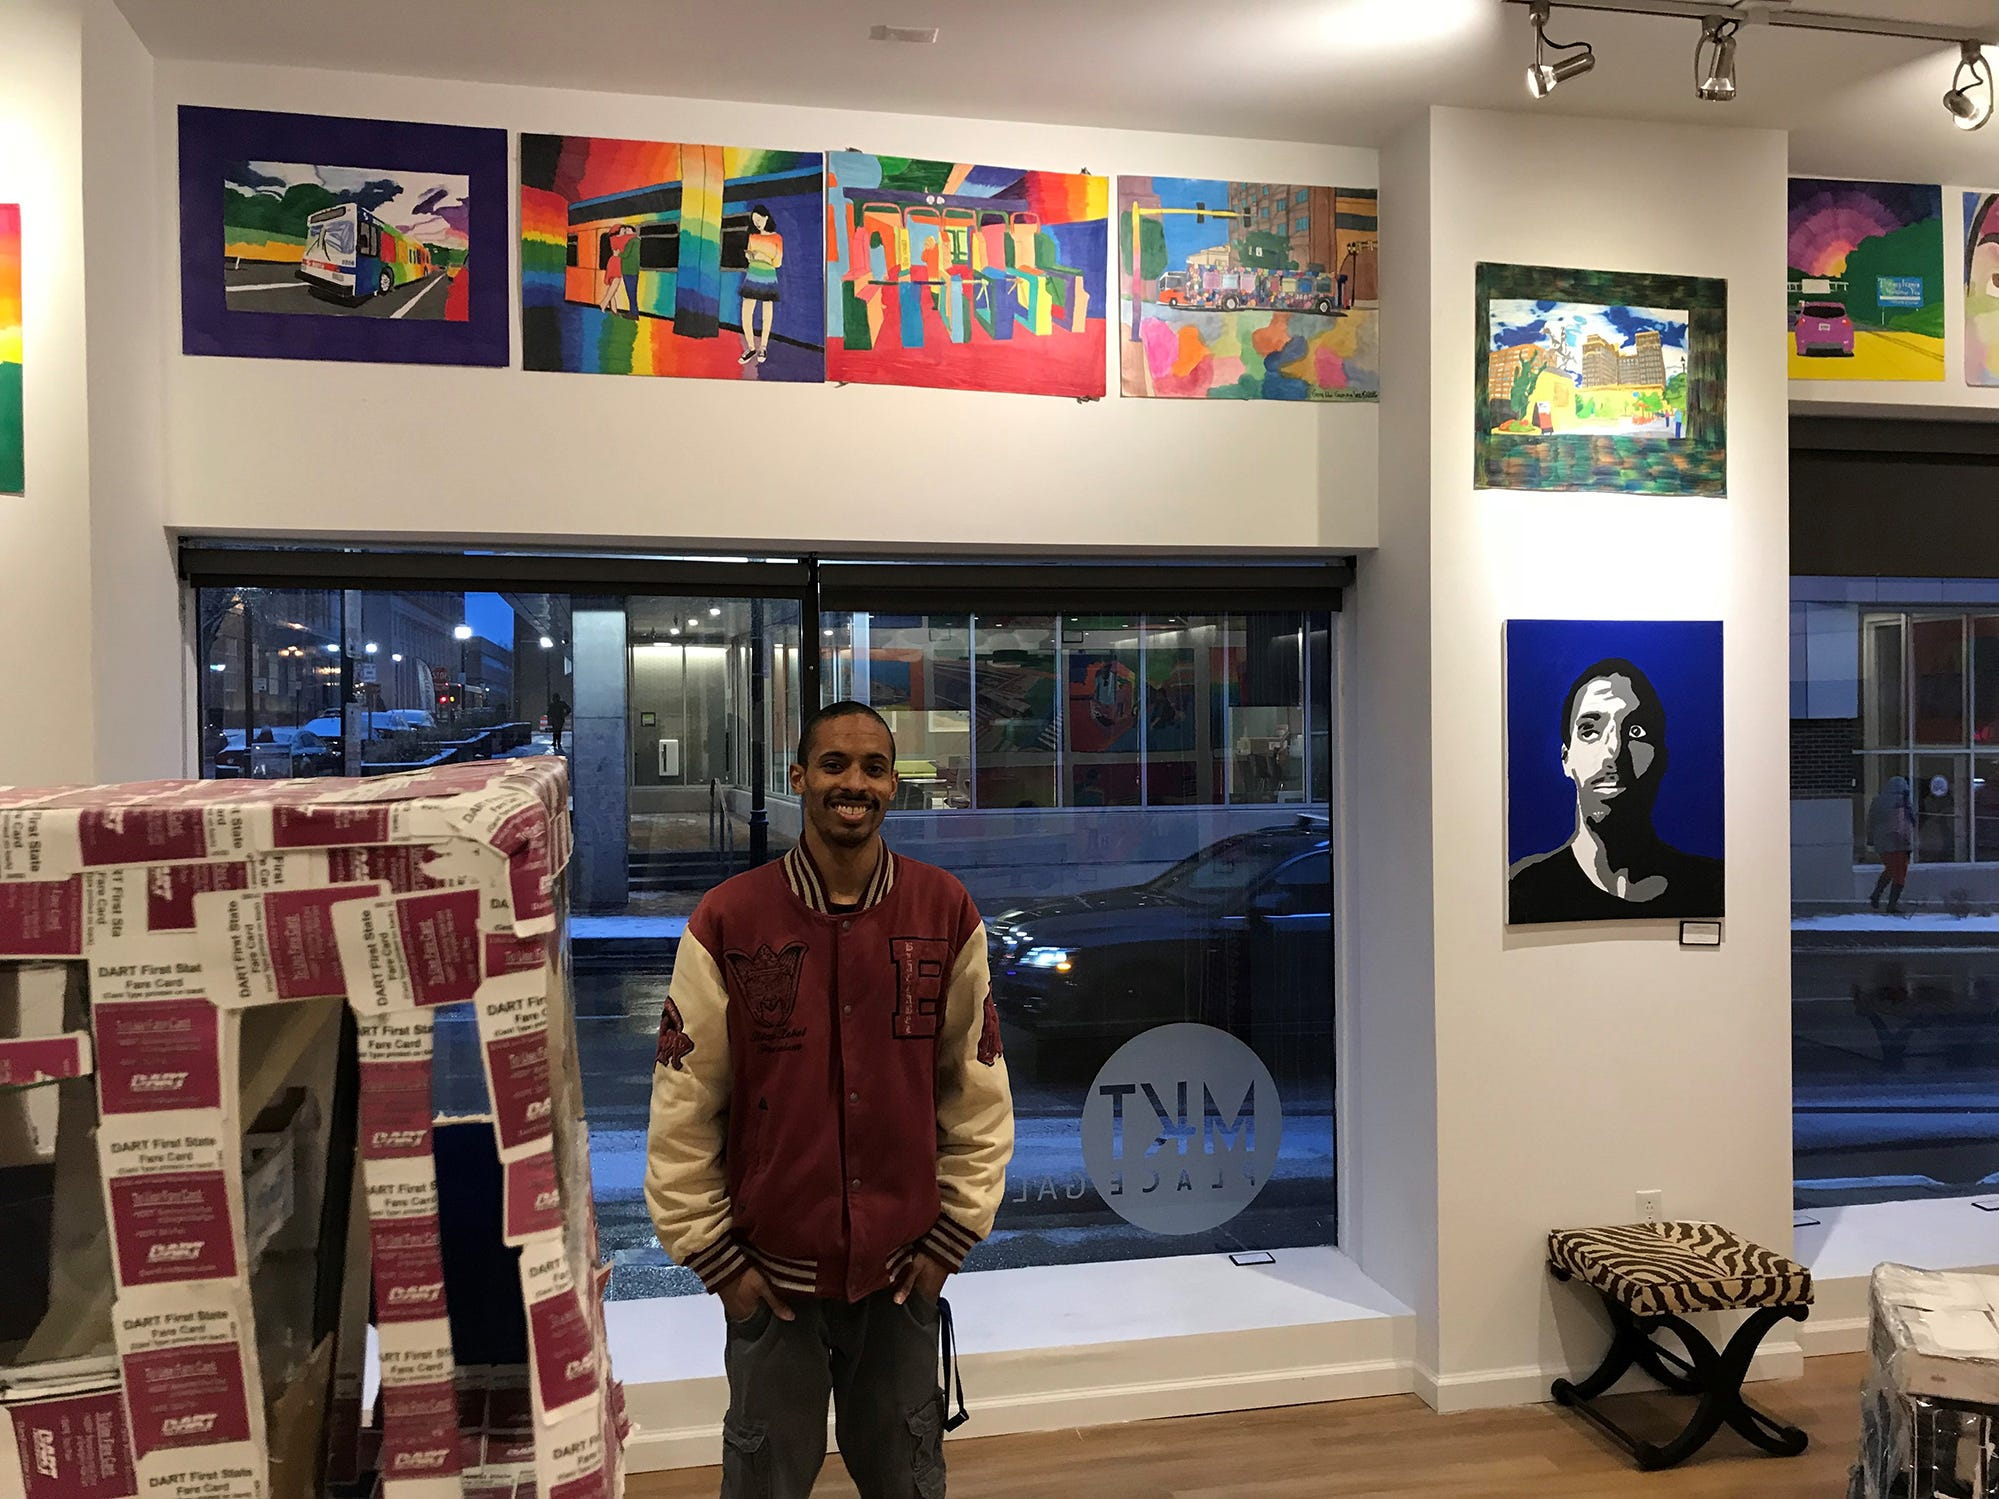 Geraldo Gonzalez, who is fascinated by buses and transportation, has an exhibit of his work on Market Street in Wilmington.